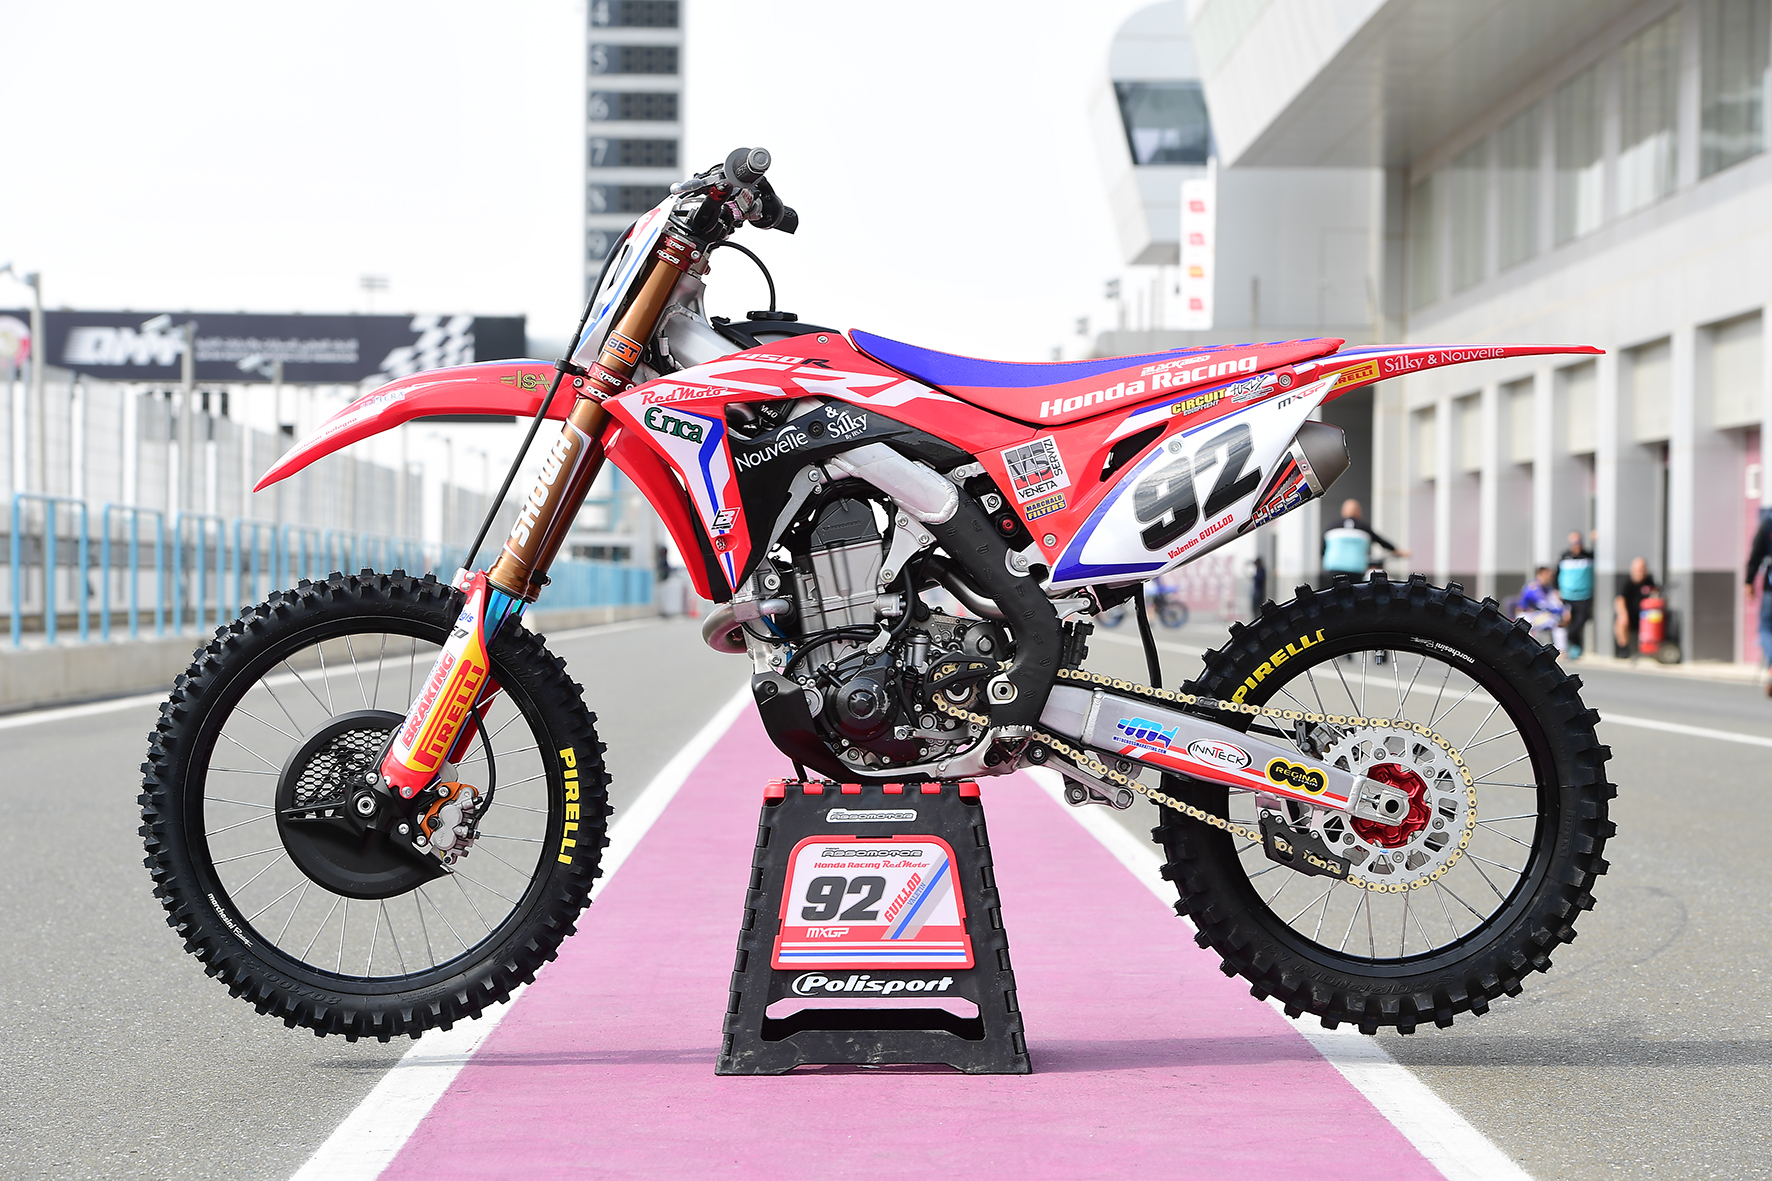 CRF 450 2017 Guillod #92